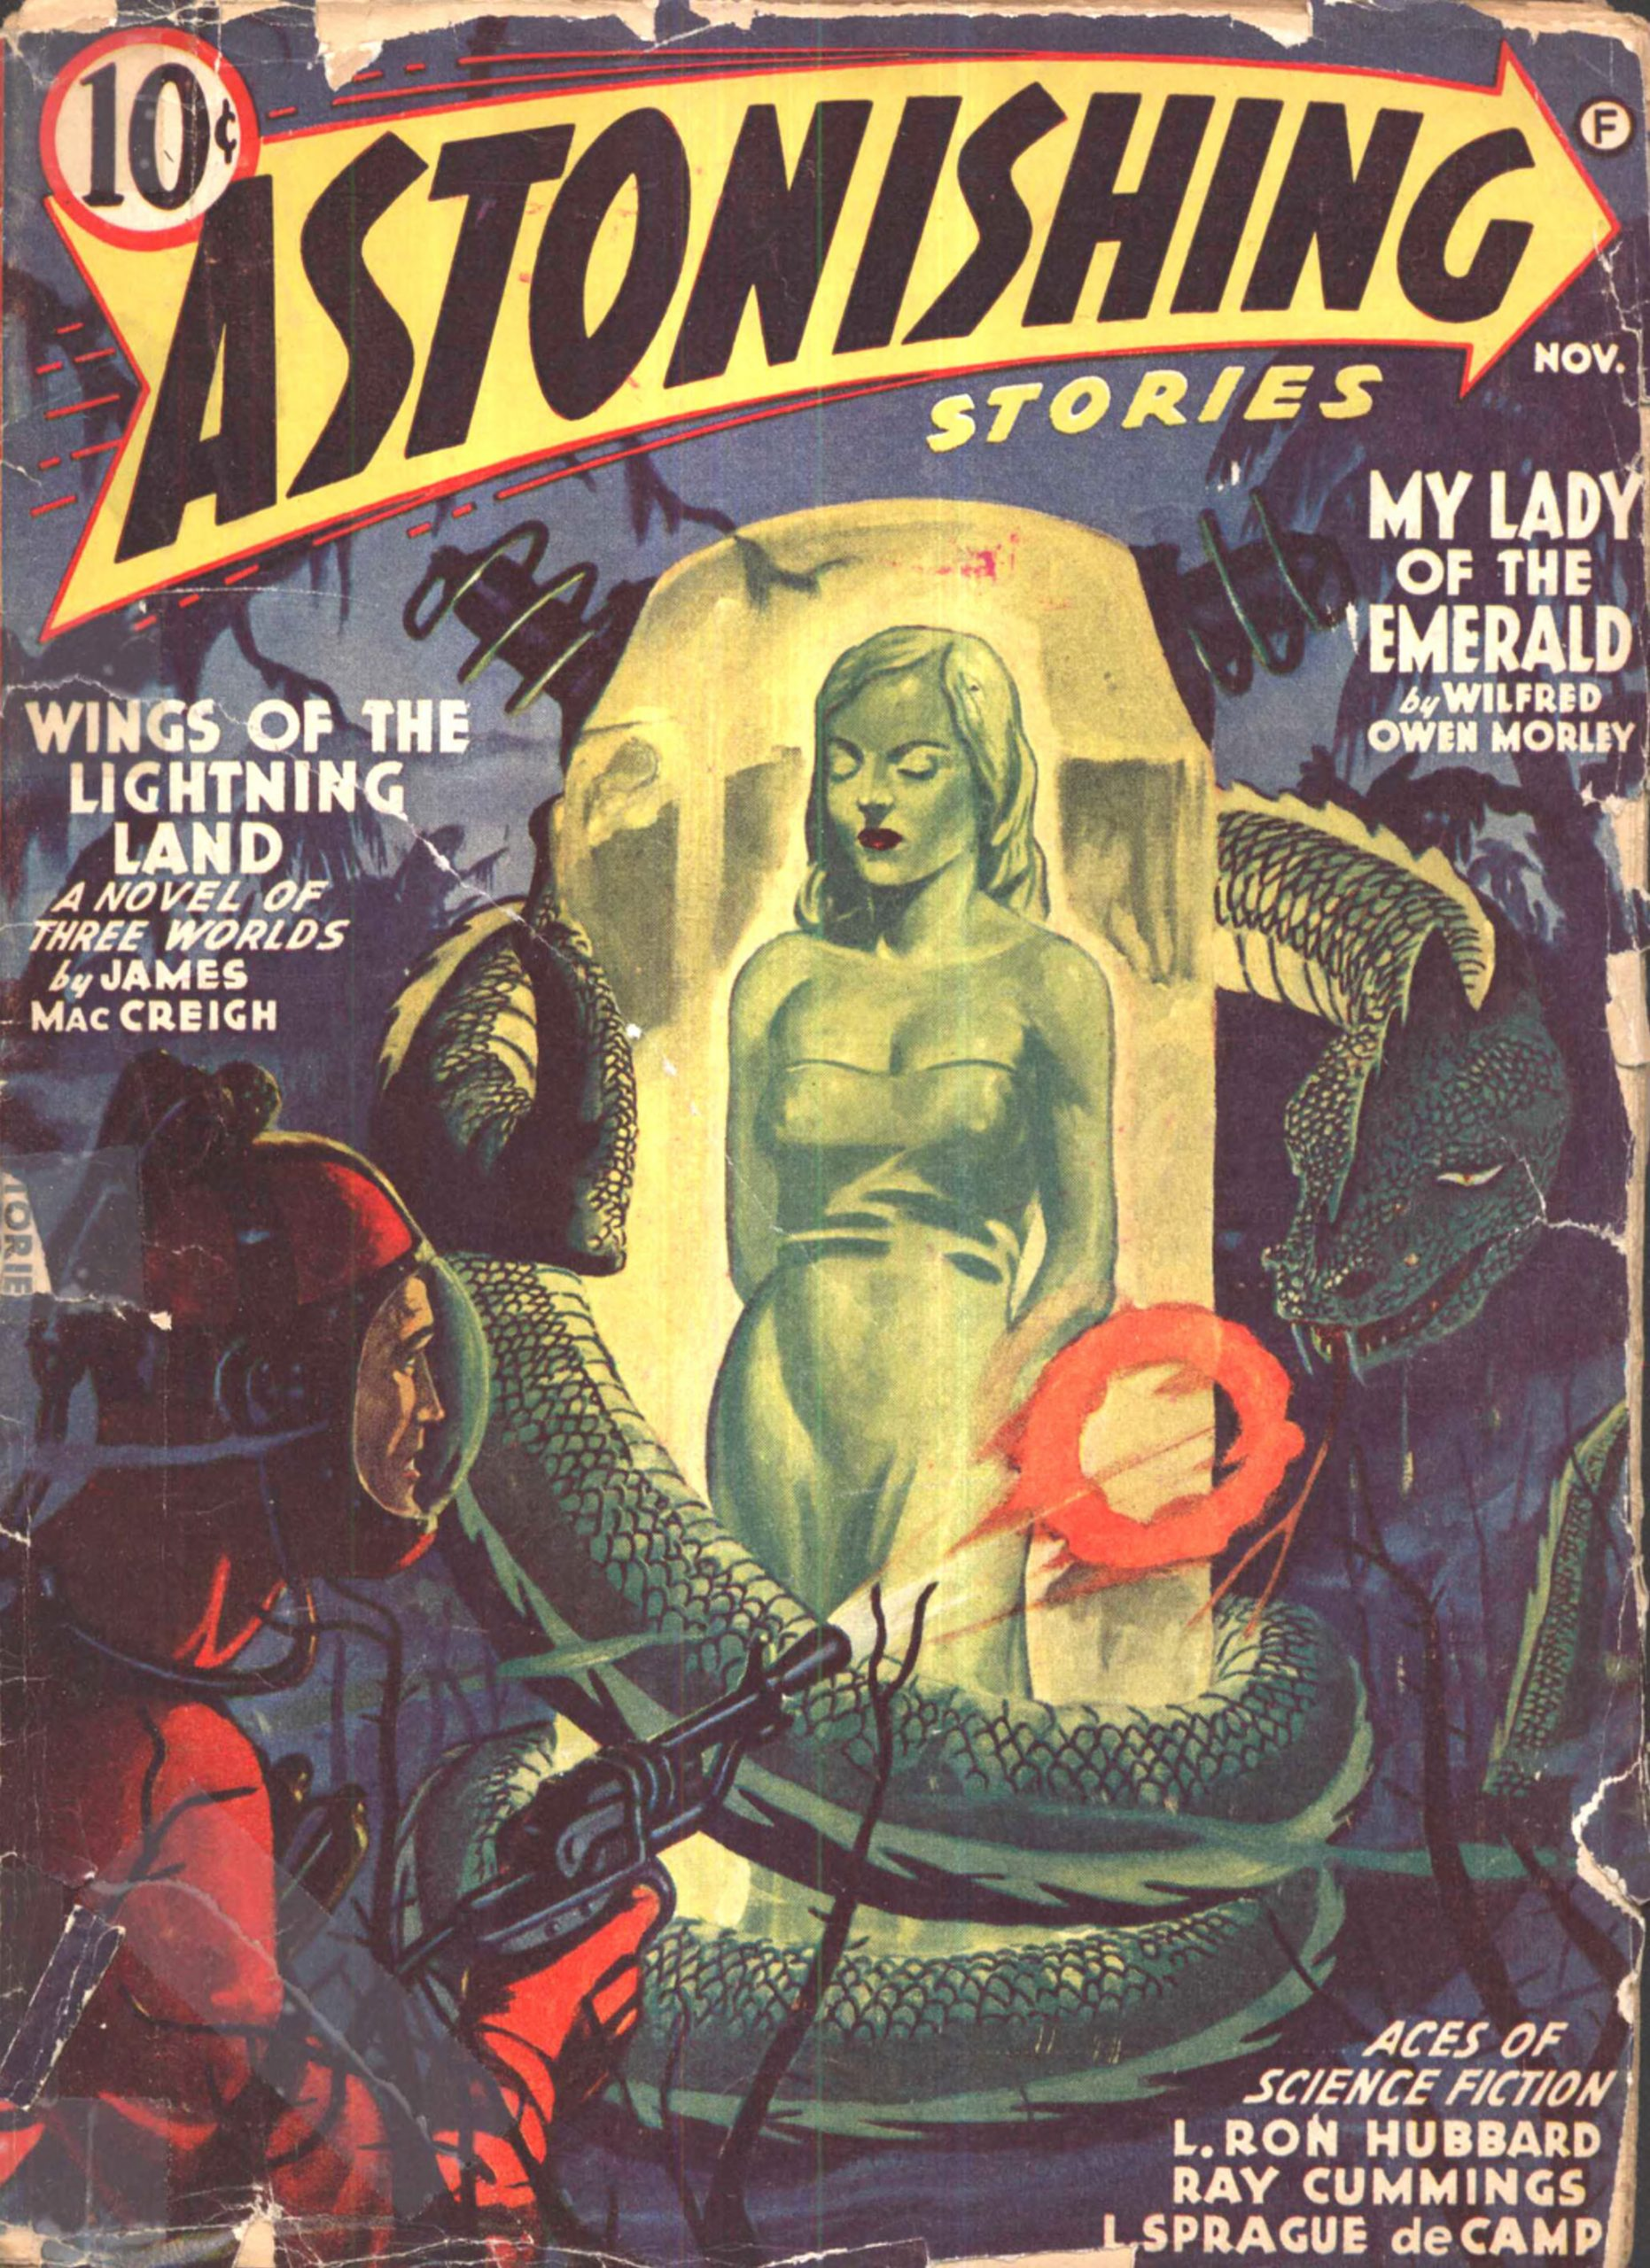 A woman encased in a giant emerald, in an unattributed cover for the November 1941 cover of Astonishing Stories.